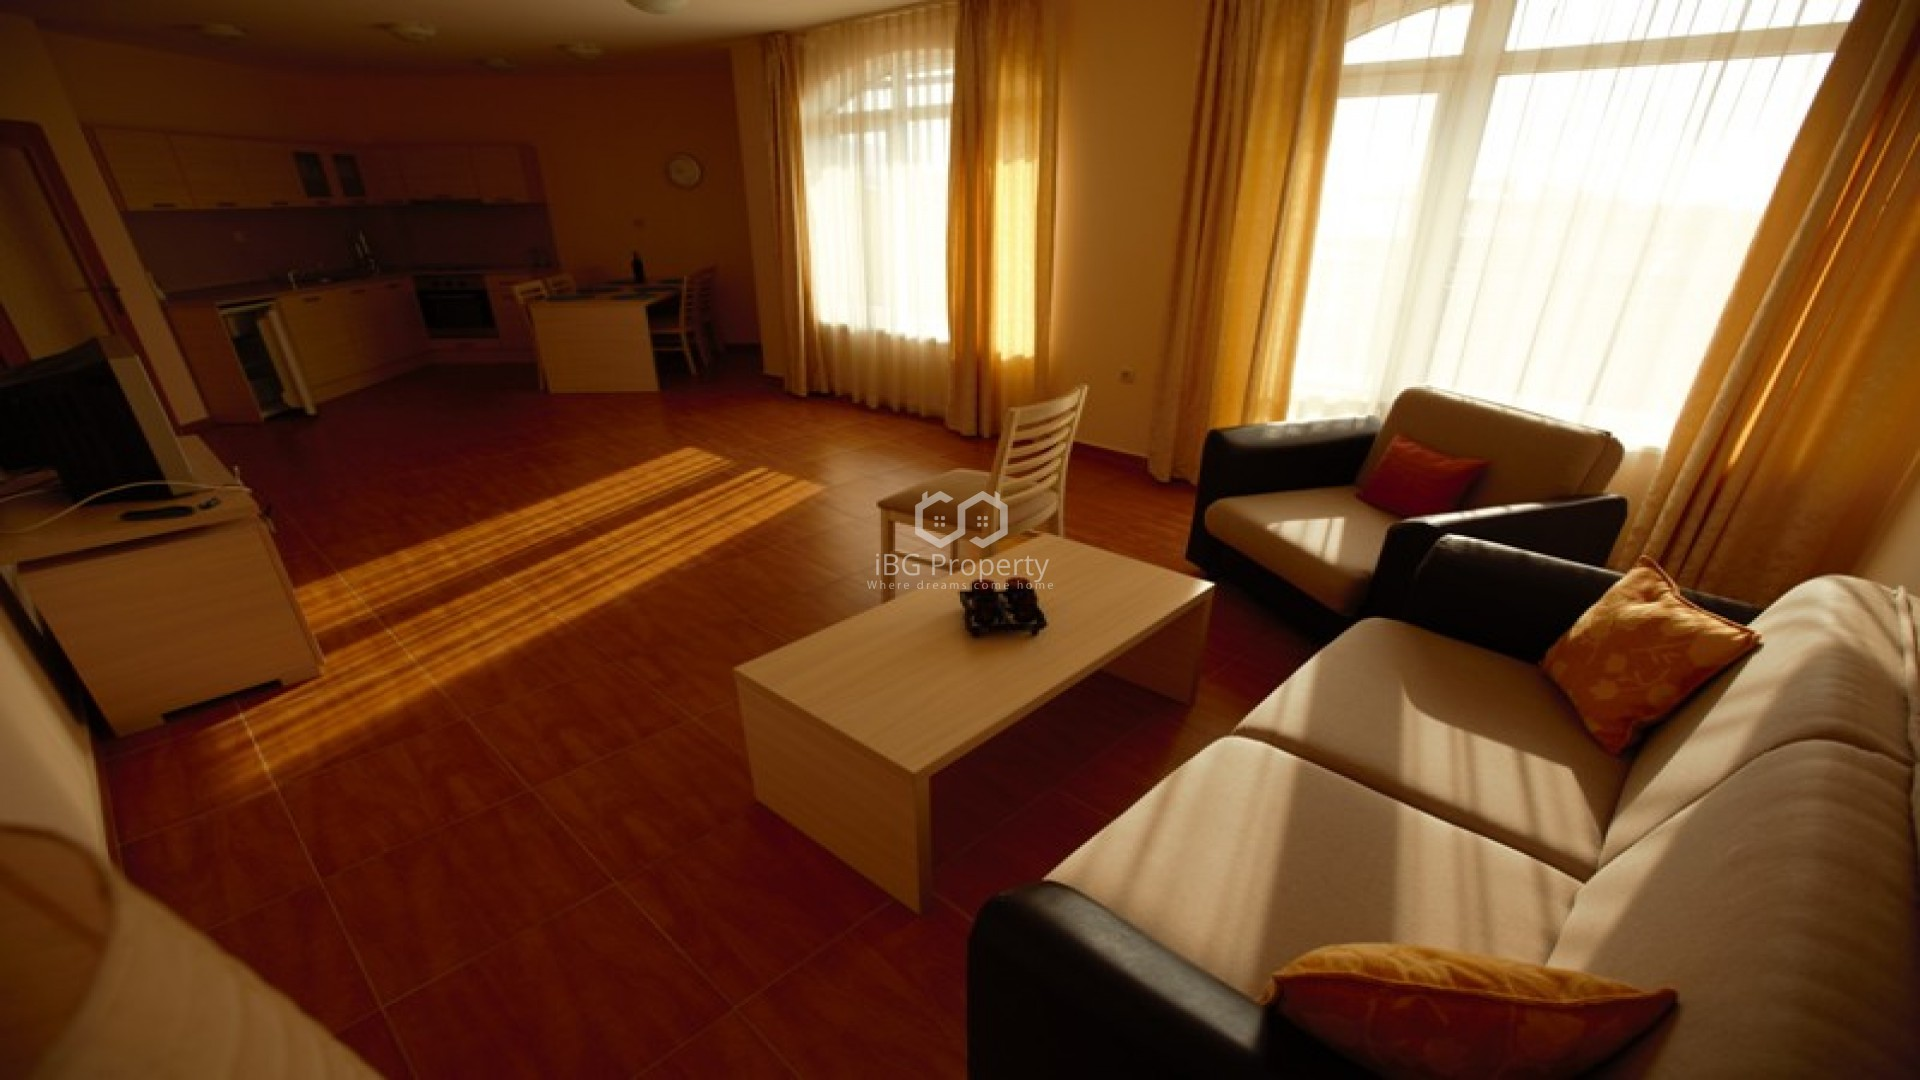 Many bedrooms apartment Sveti-vlas 142 m2